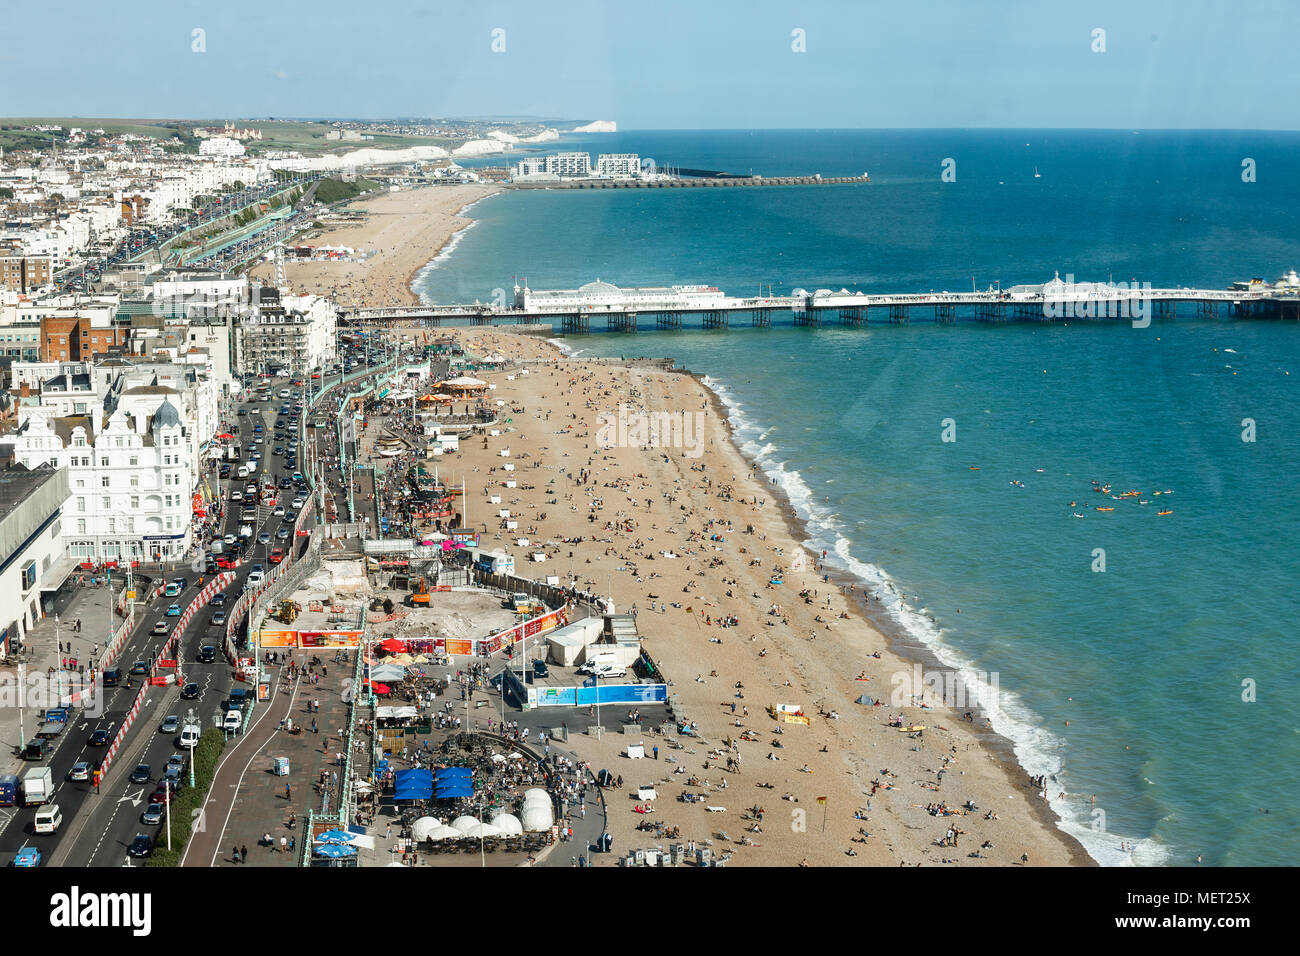 Brighton, United Kingdom - AUGUST 1, 2017: the roadway is made narrower due to construction work, seafront Sussex, coastline West Pier, sunny day - Stock Image